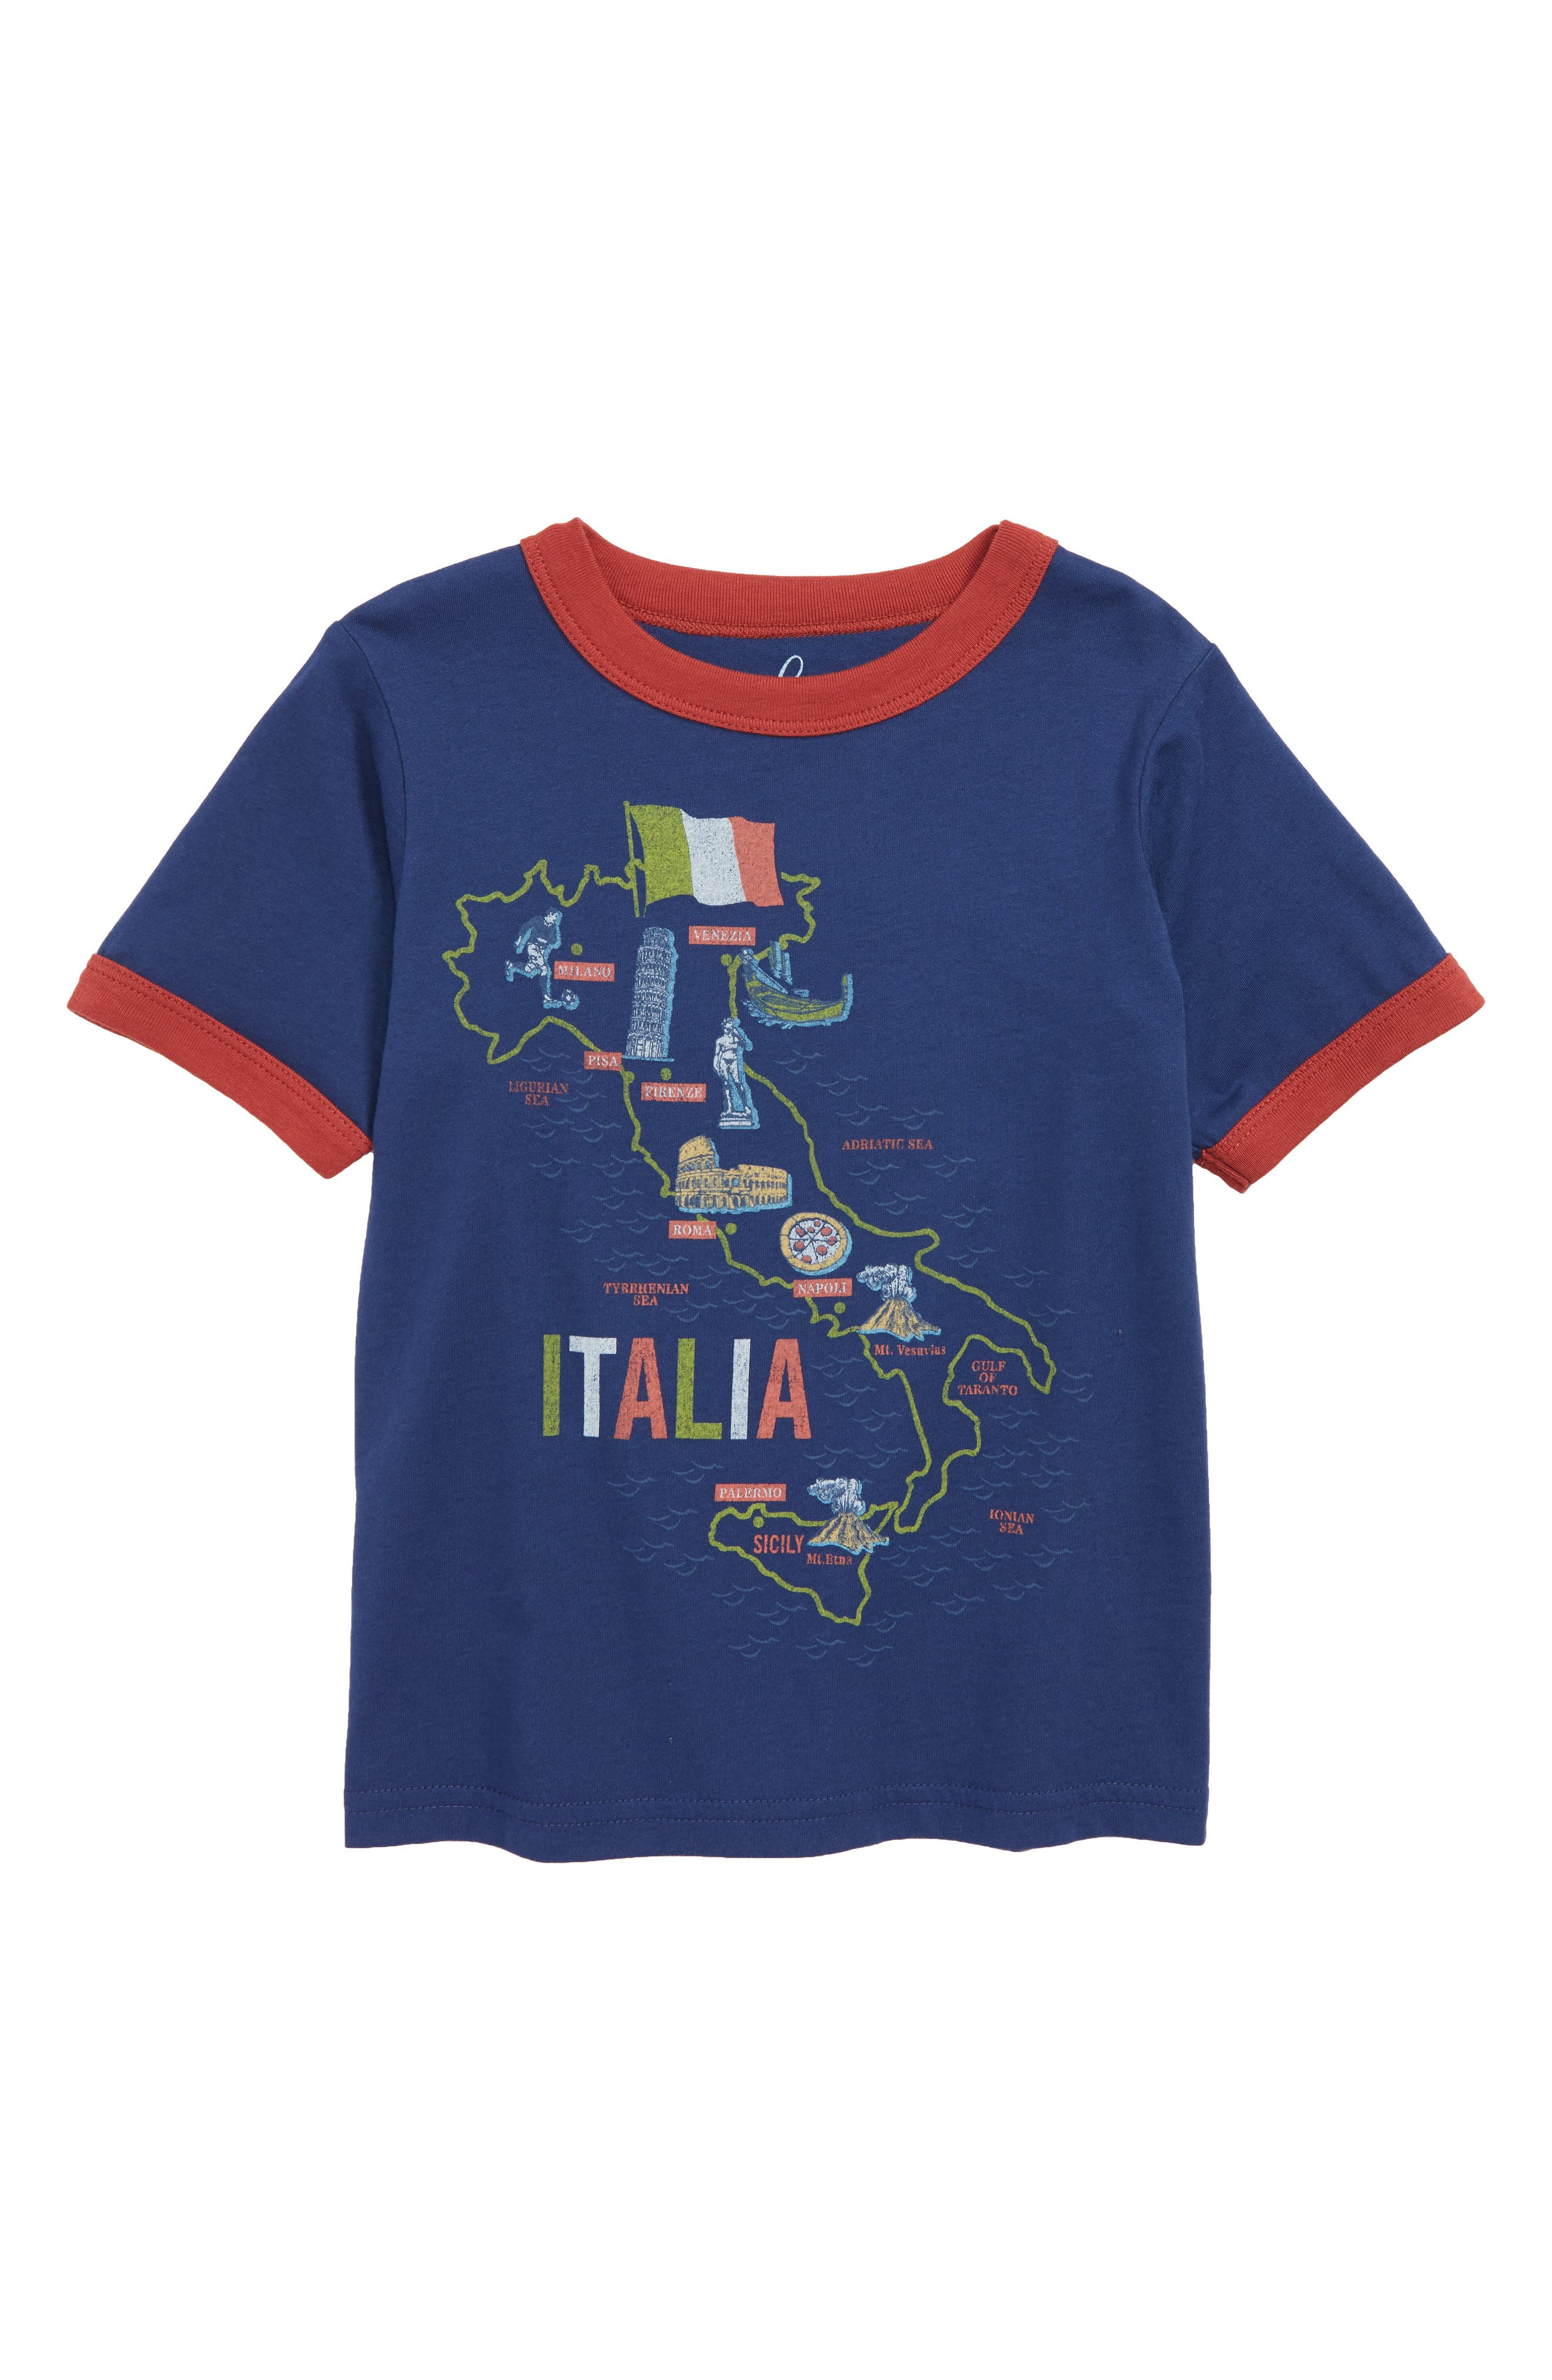 Italia Graphic T-Shirt,                         Main,                         color, 410